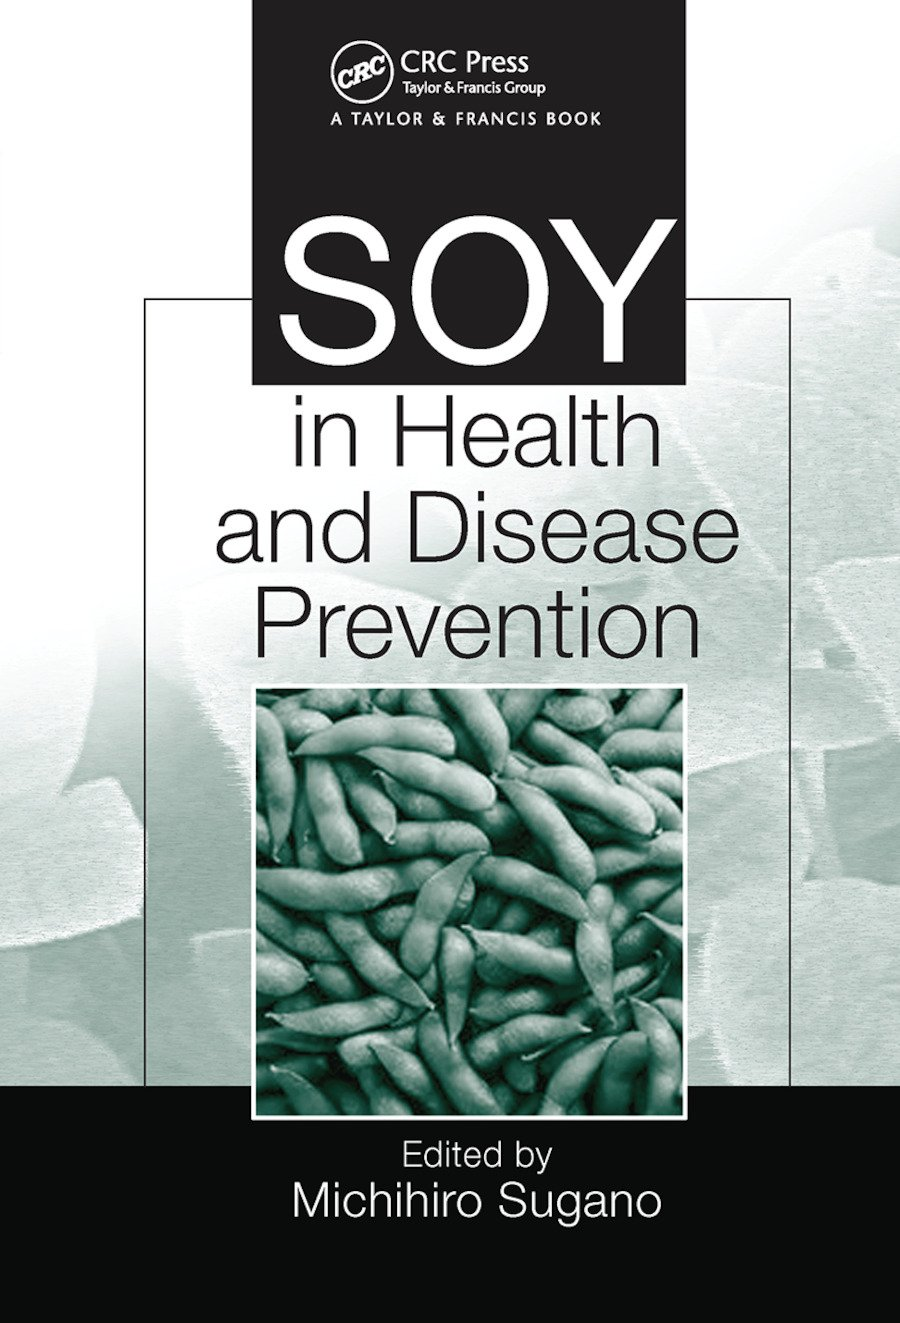 Soy in Health and Disease Prevention